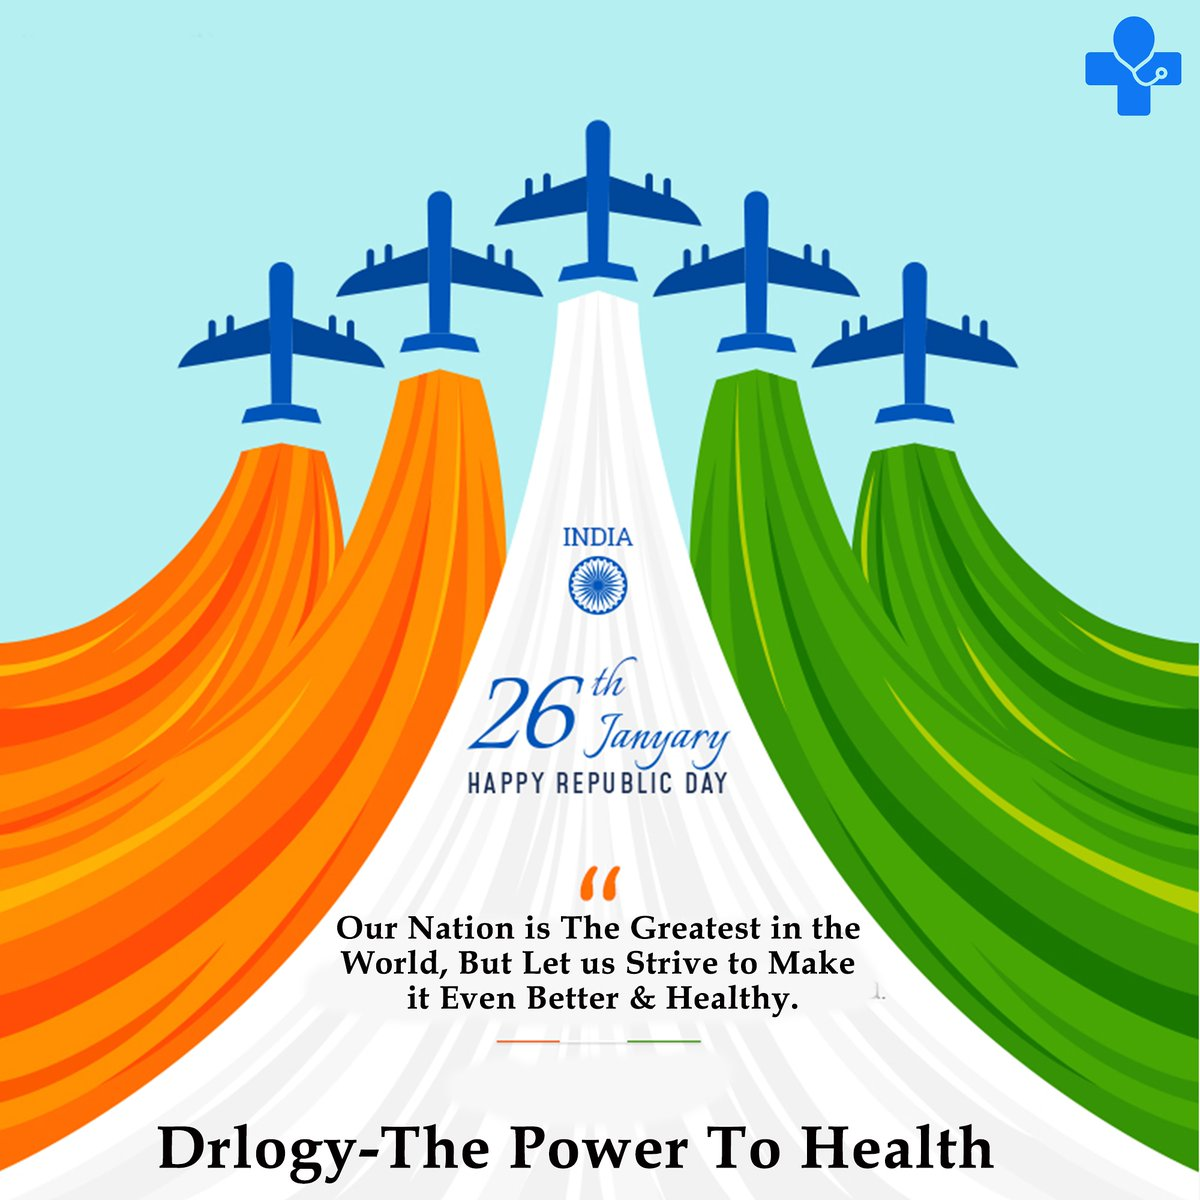 Healthy Wishes For Healthy Future of The Nation.  #drlogy #drlogyapp  #healthyeating #health #fitness #fitnessmotivation #happyrepublicday #26january #2021#nation #healthylifestyle #FitIndiaMovement #fitfam #healthyliving #staysafe #stayfit #staystrong #stayhome #StayFit